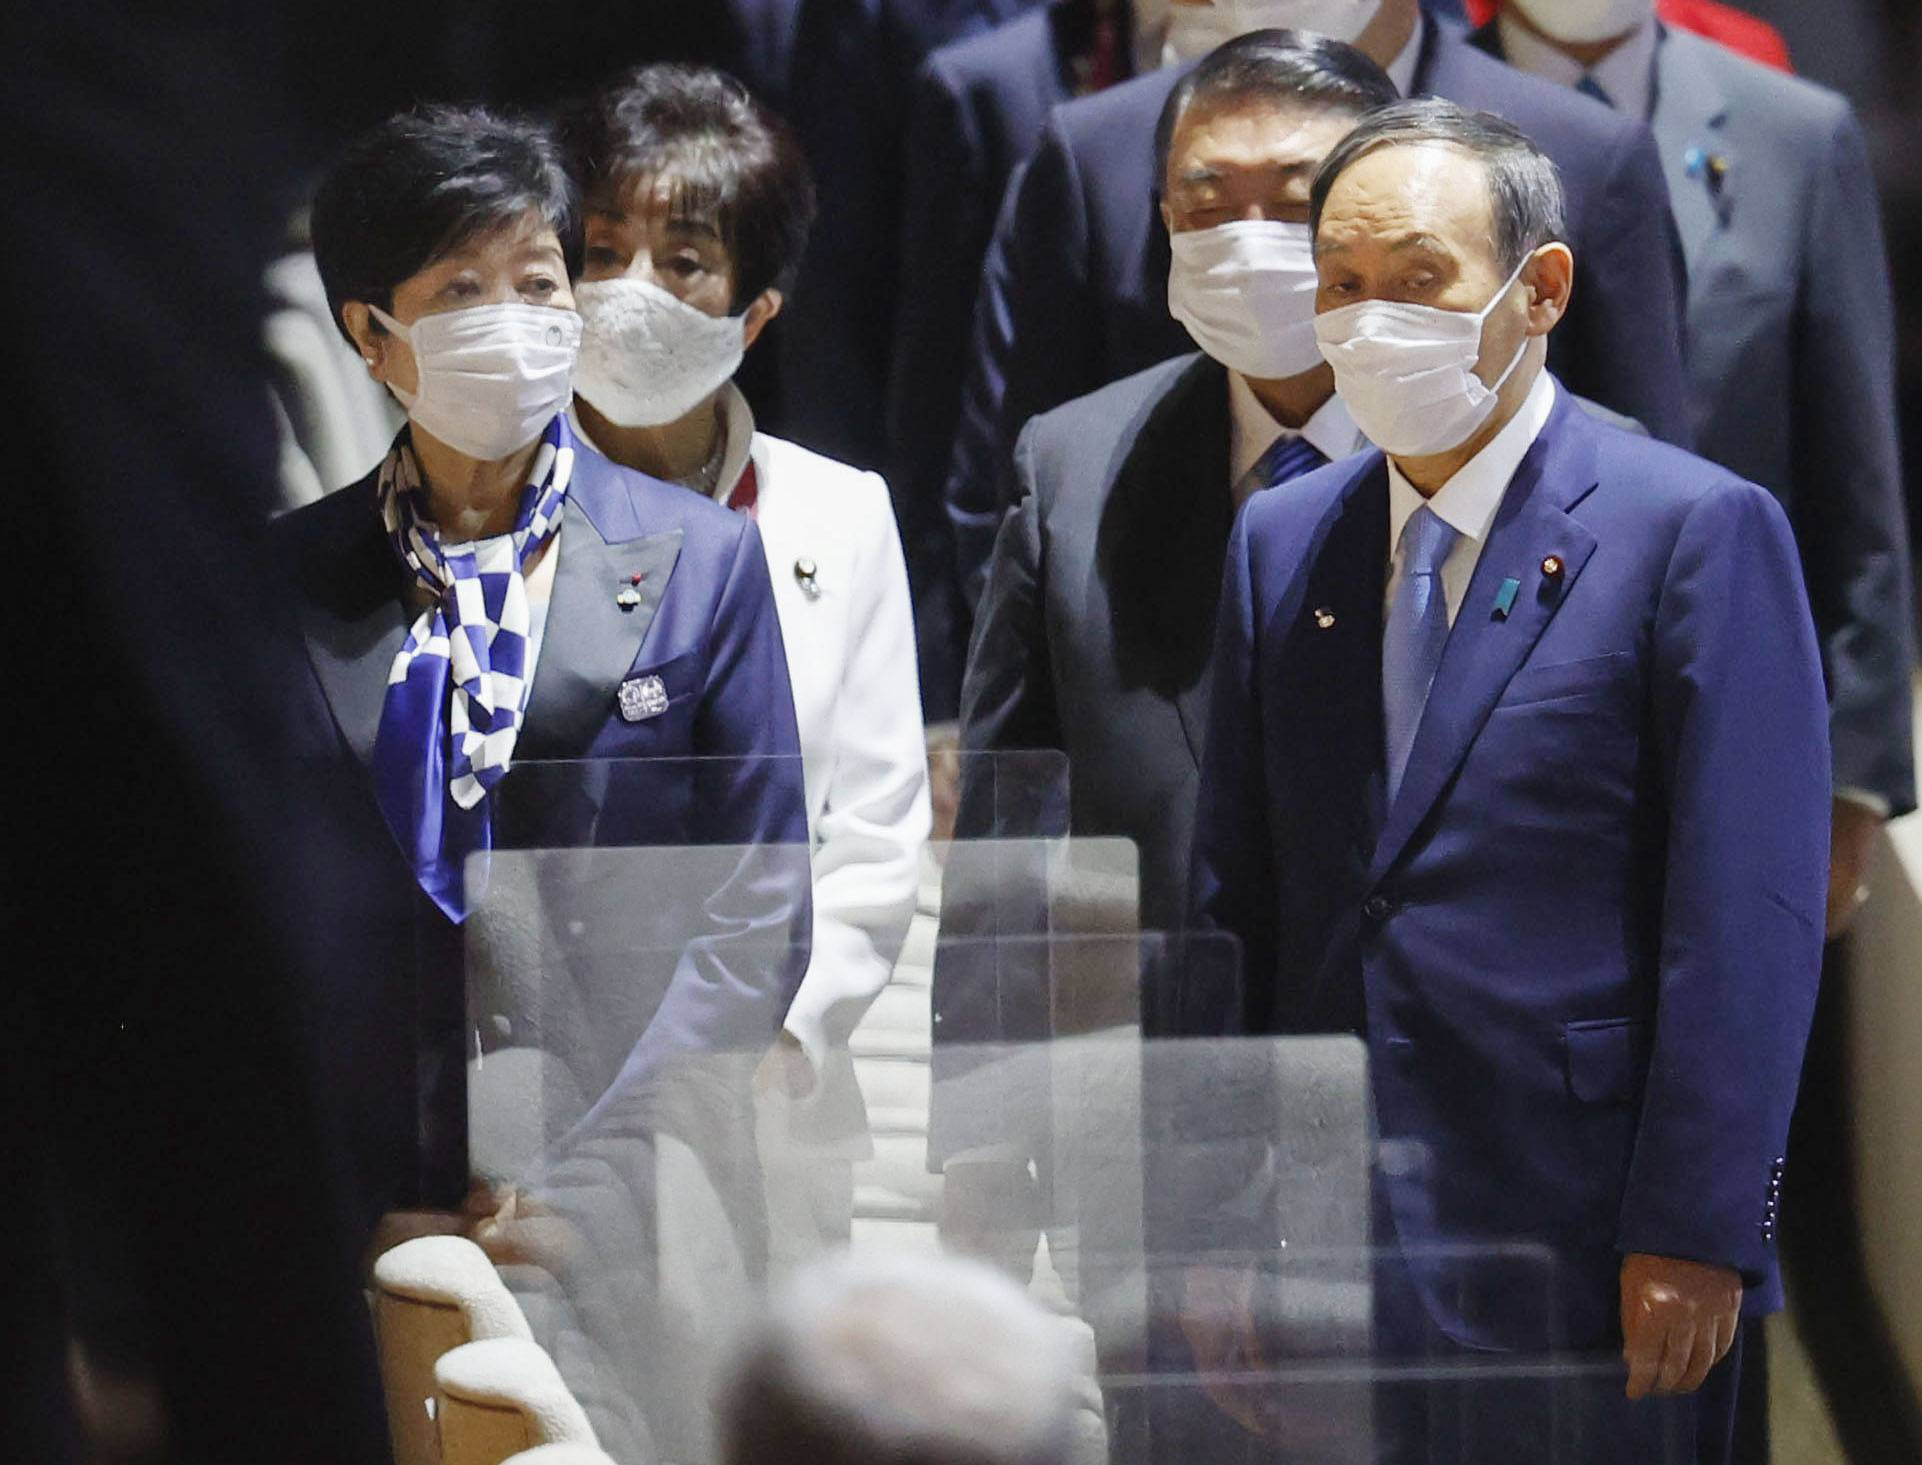 Tokyo Gov. Yuriko Koike and Prime Minister Yoshihide Suga attend the opening ceremony of the Tokyo Olympics at the National Stadium on Friday. The two met on Sunday to discuss the Olympics and COVID-19 measures. | KYODO